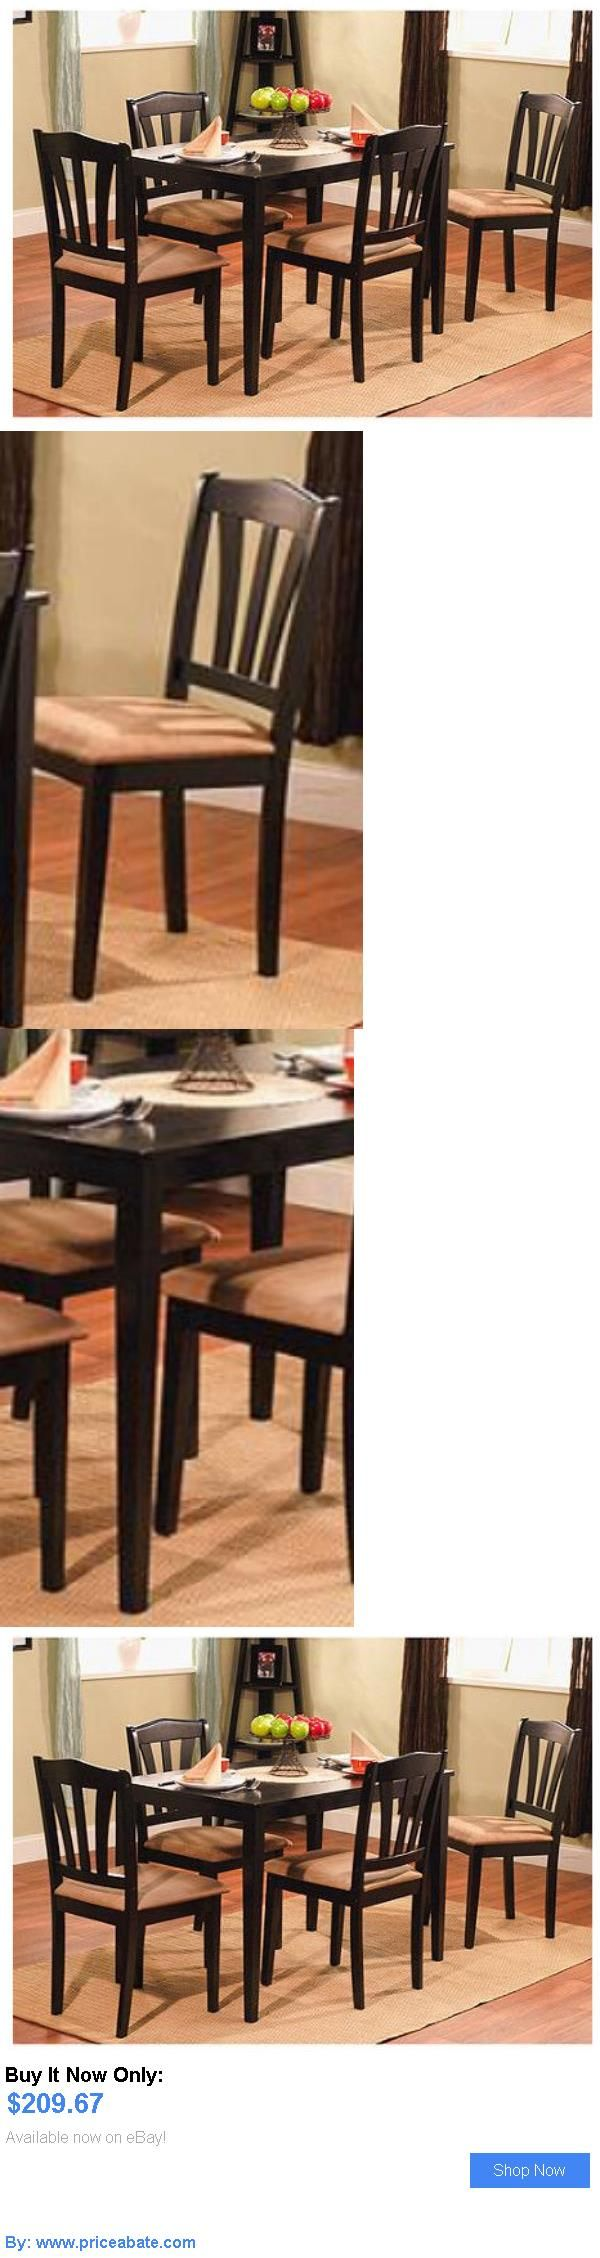 furniture: Modern Design Wood Kitchen Table And Chairs Set 5 Piece Black Dining Furniture BUY IT NOW ONLY: $209.67 #priceabatefurniture OR #priceabate